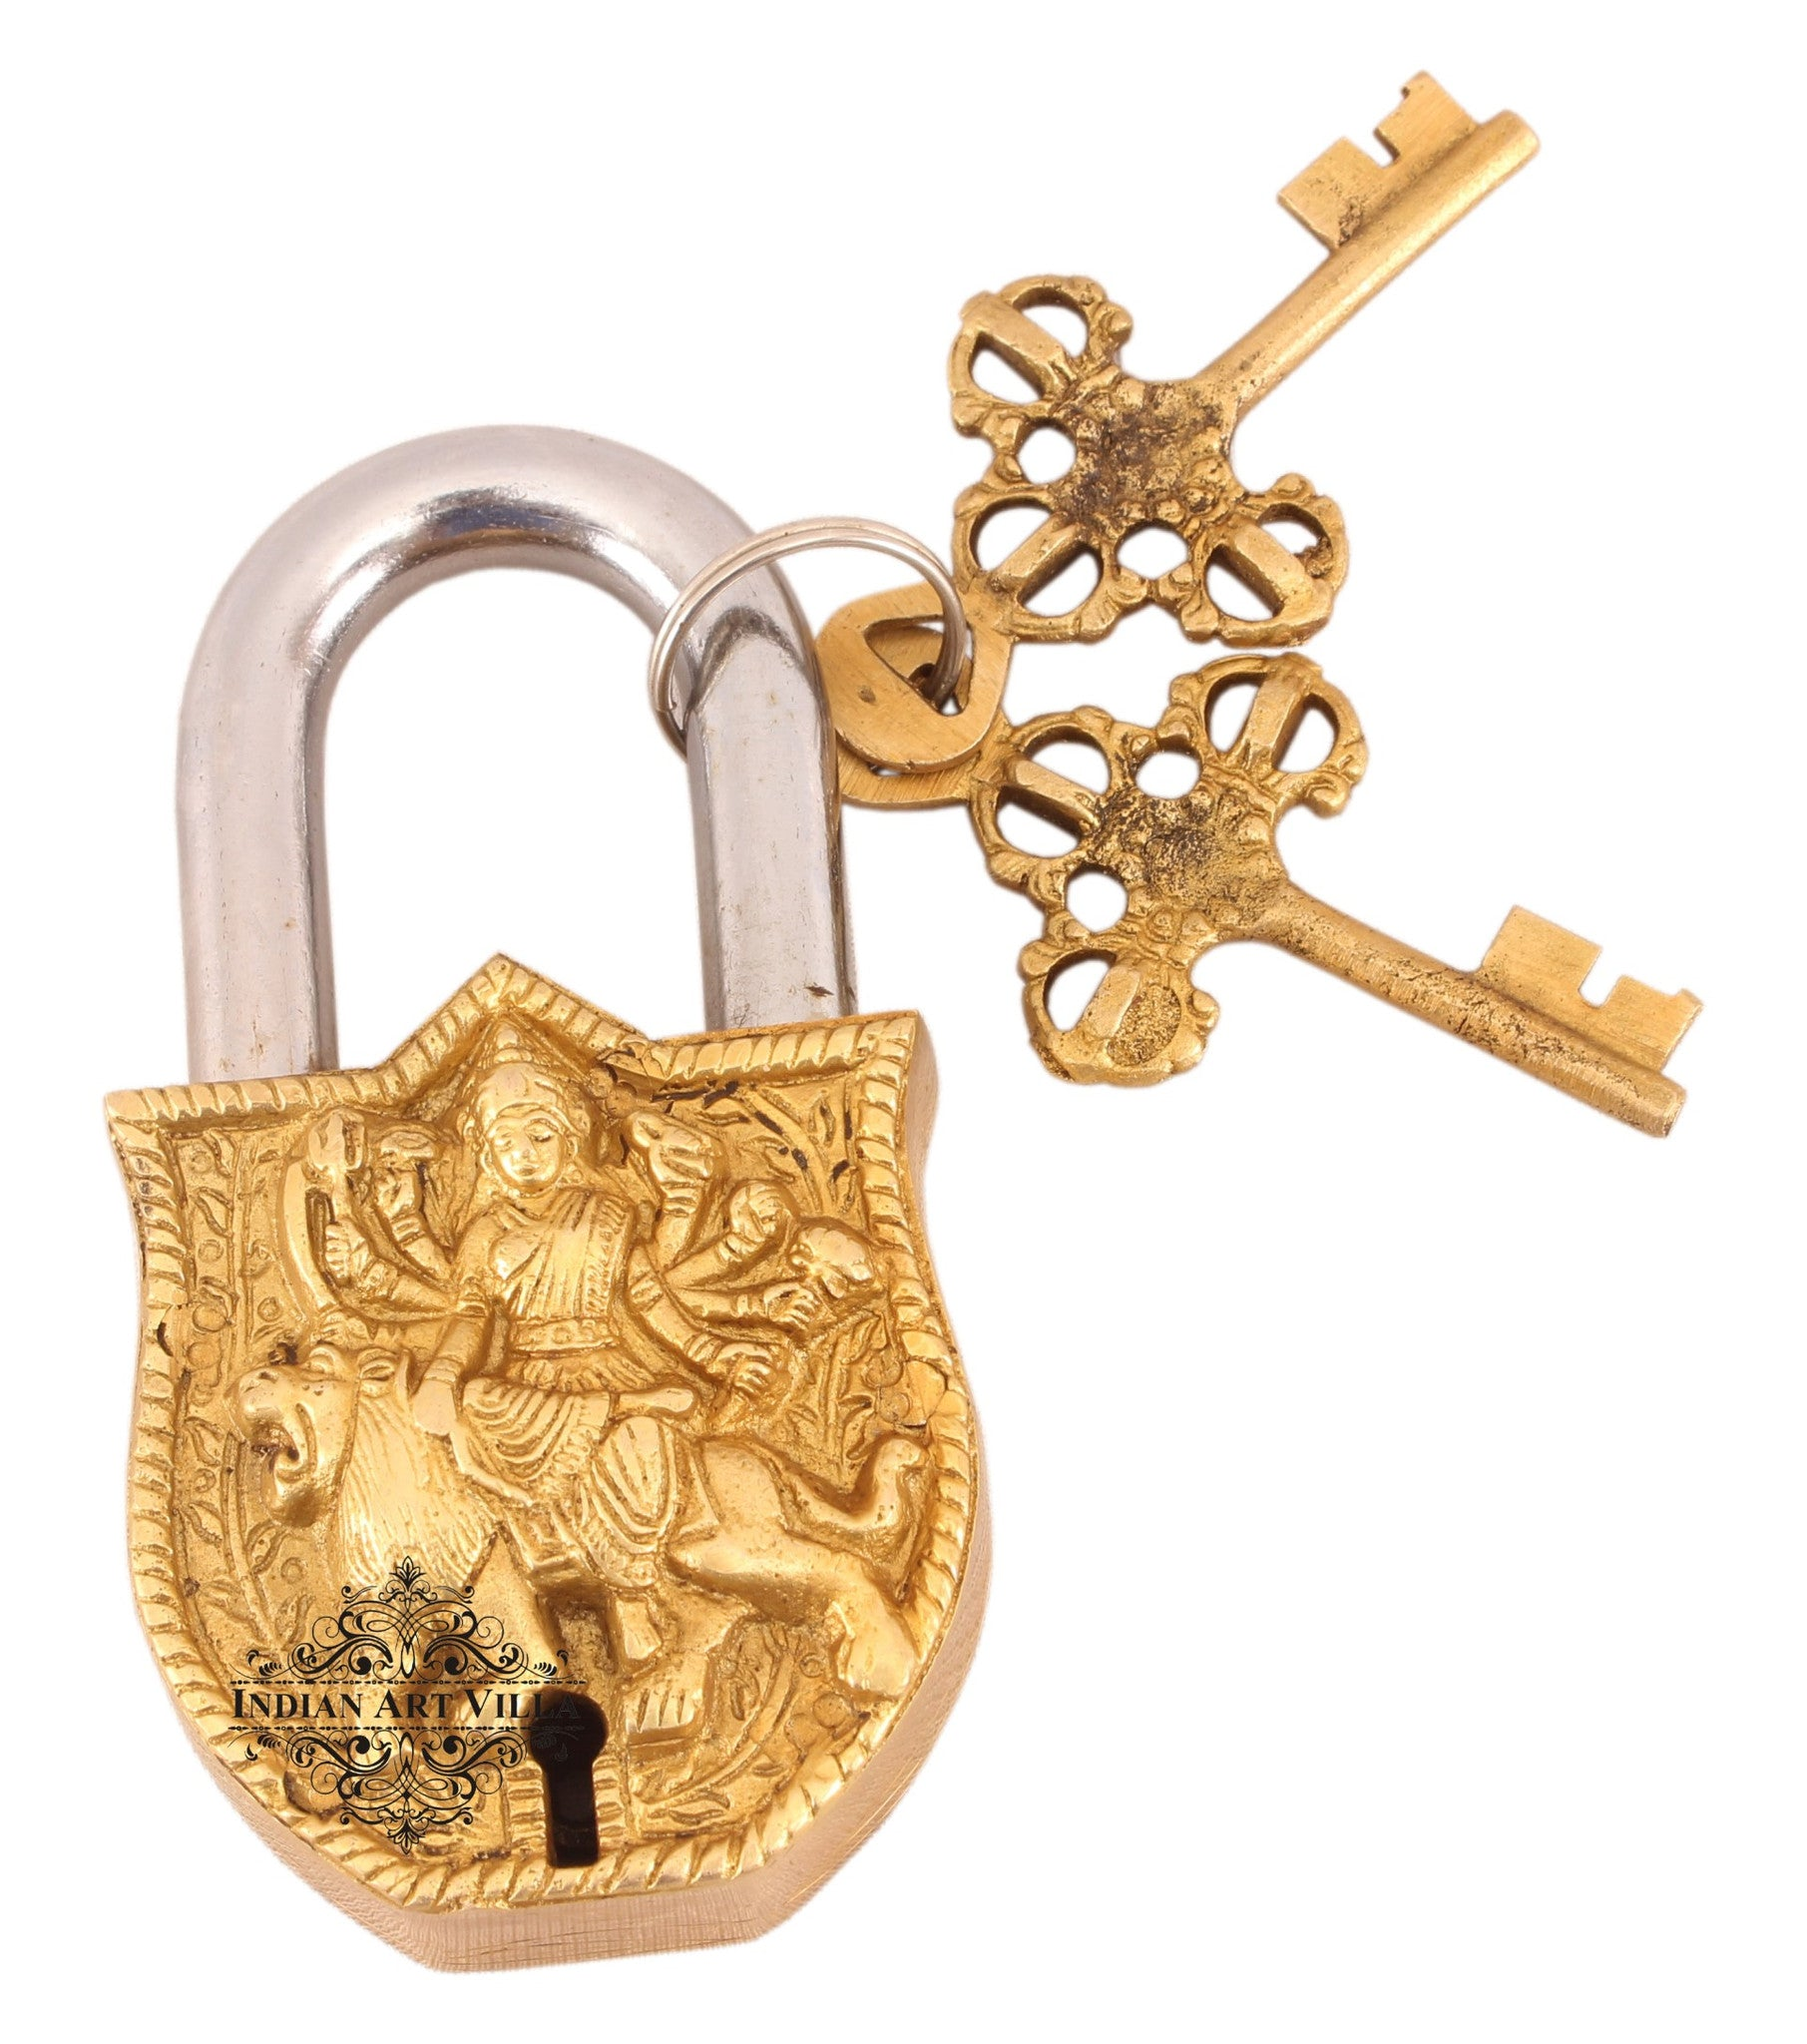 Brass Durga Maa sitting on Lion Design Lock with 2 Key